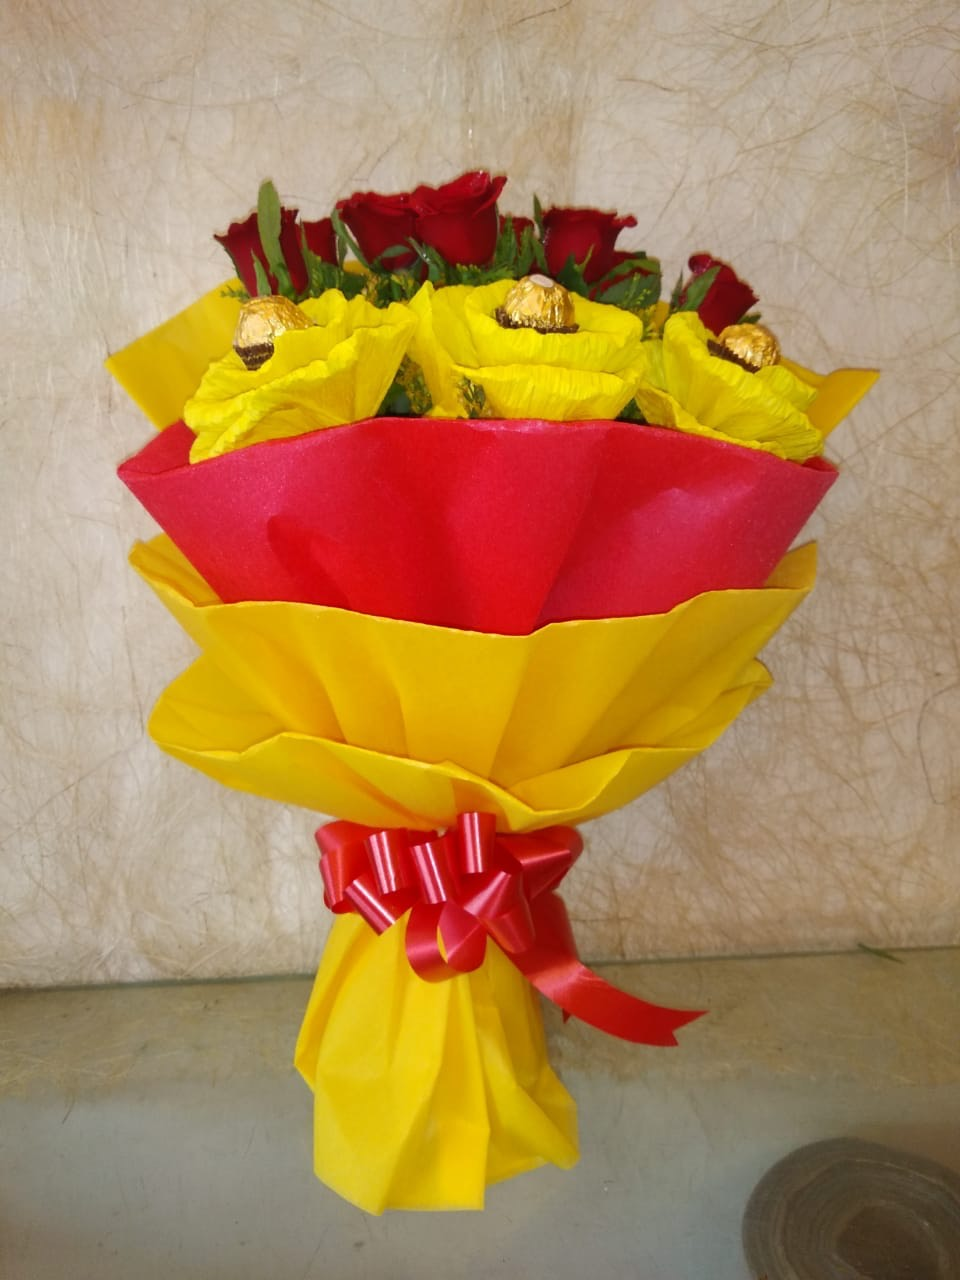 Flowers Delivery in Sector 47 GurgaonRed Roses Ferrero Rocher Bunch